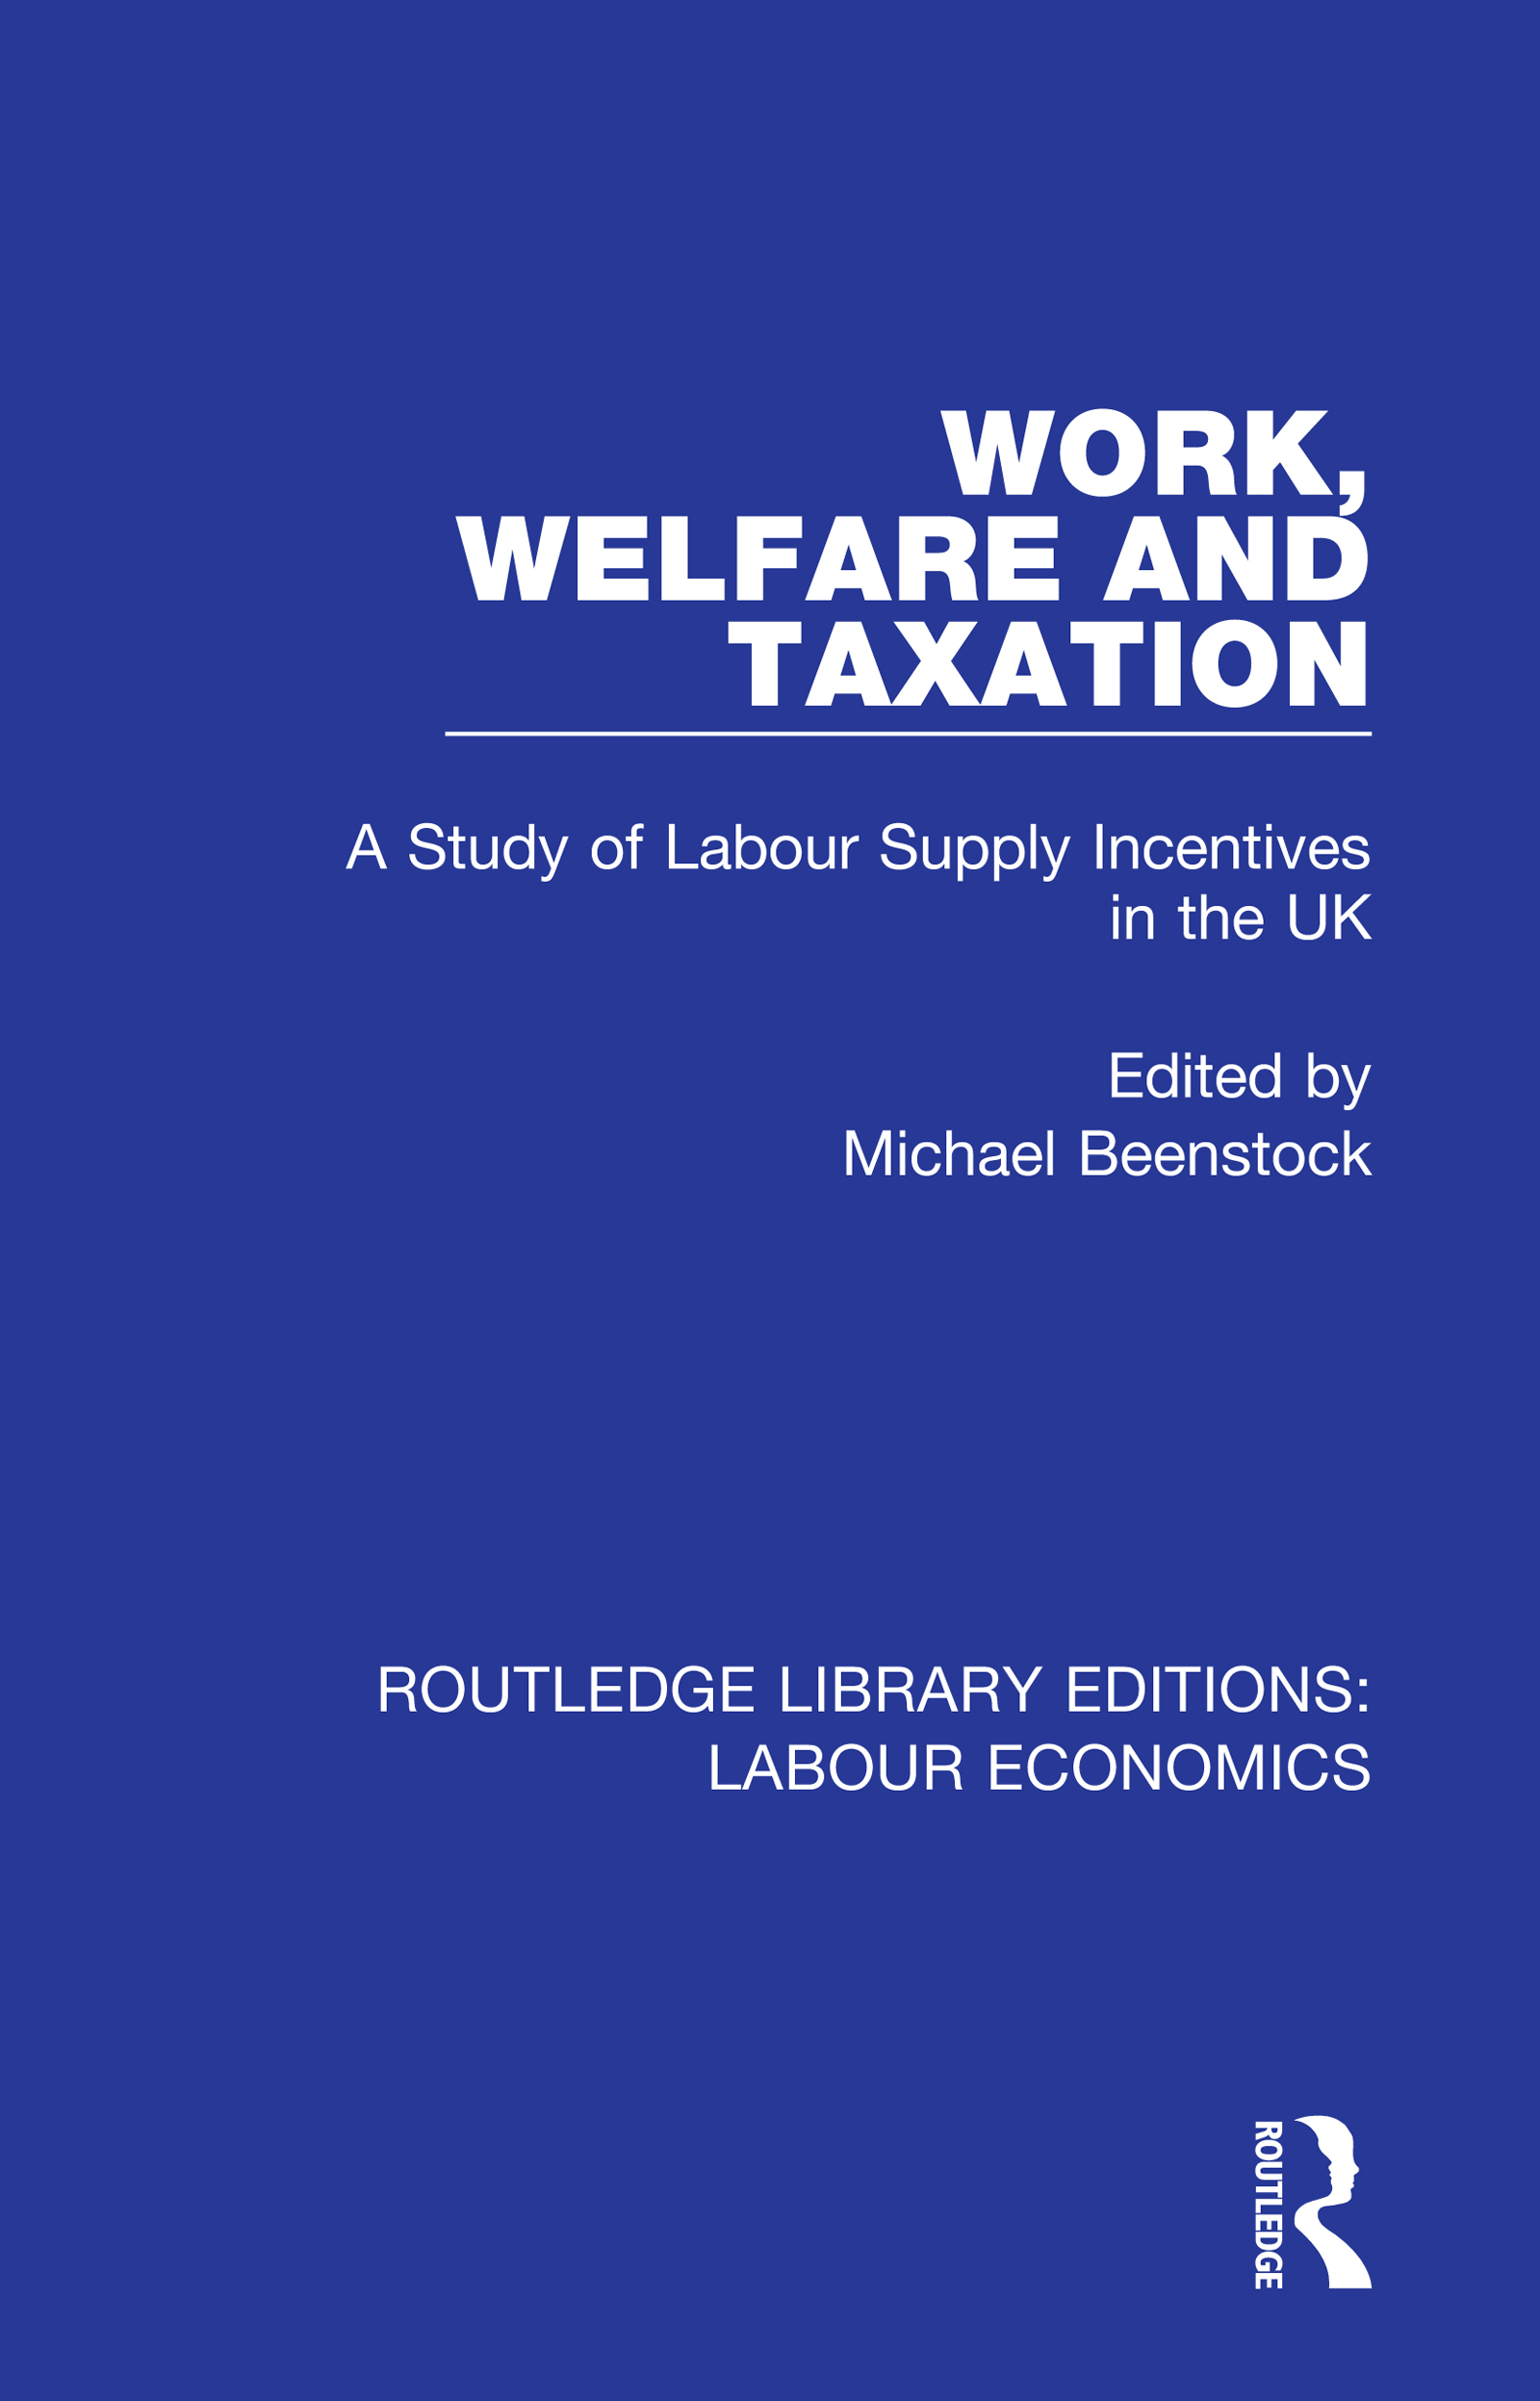 Work, Welfare and Taxation